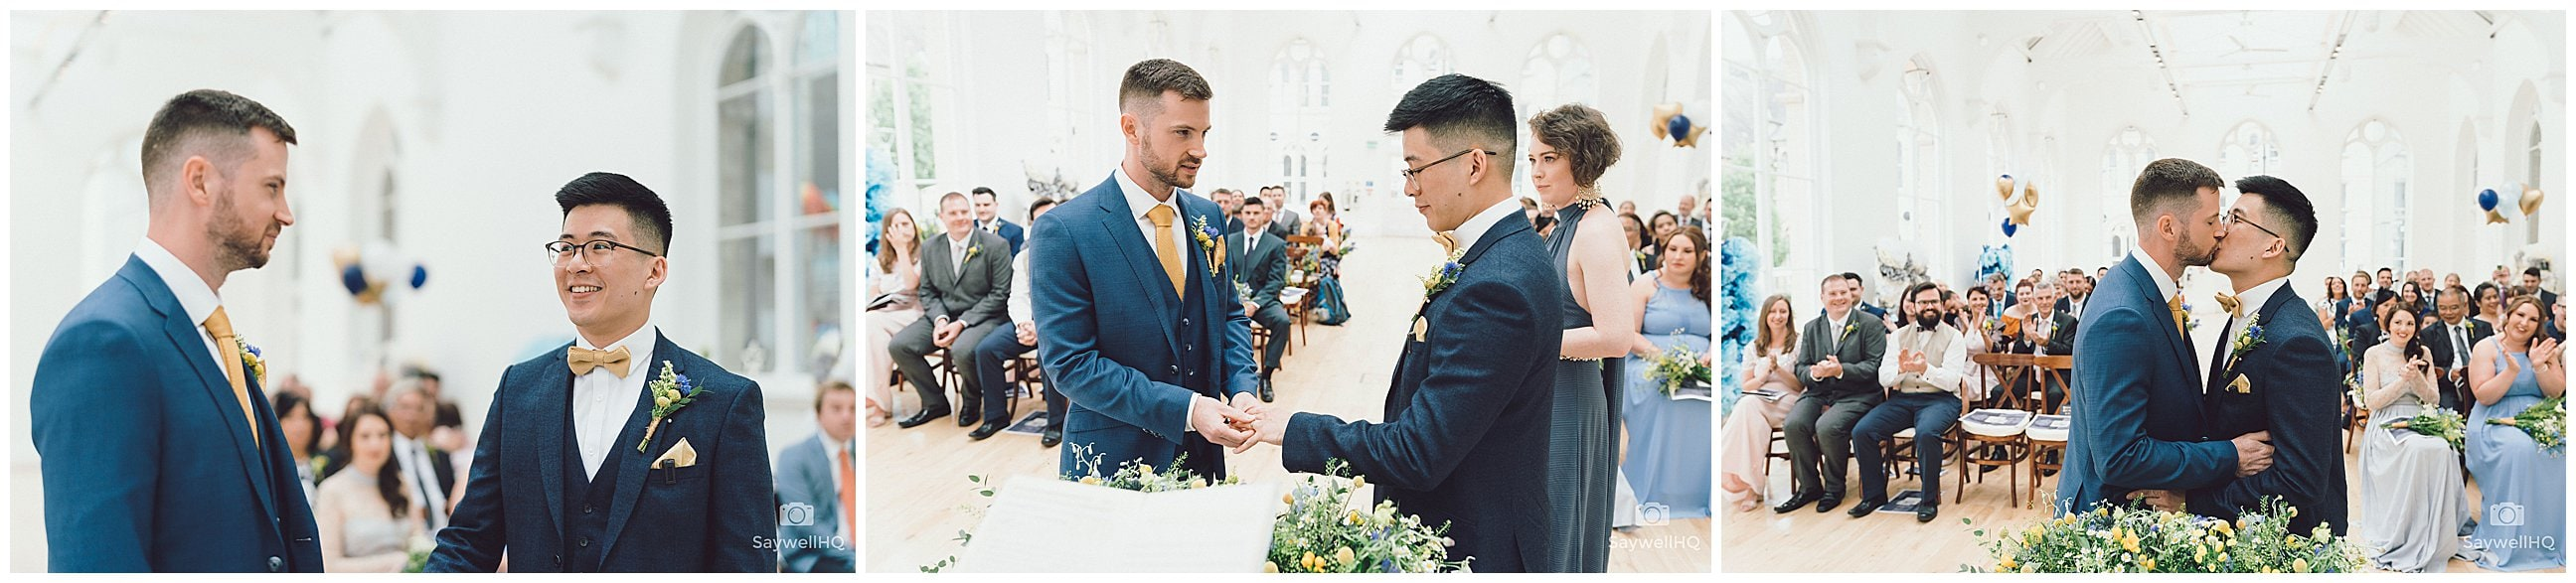 Same sex wedding photography Nottingham - marriage vows